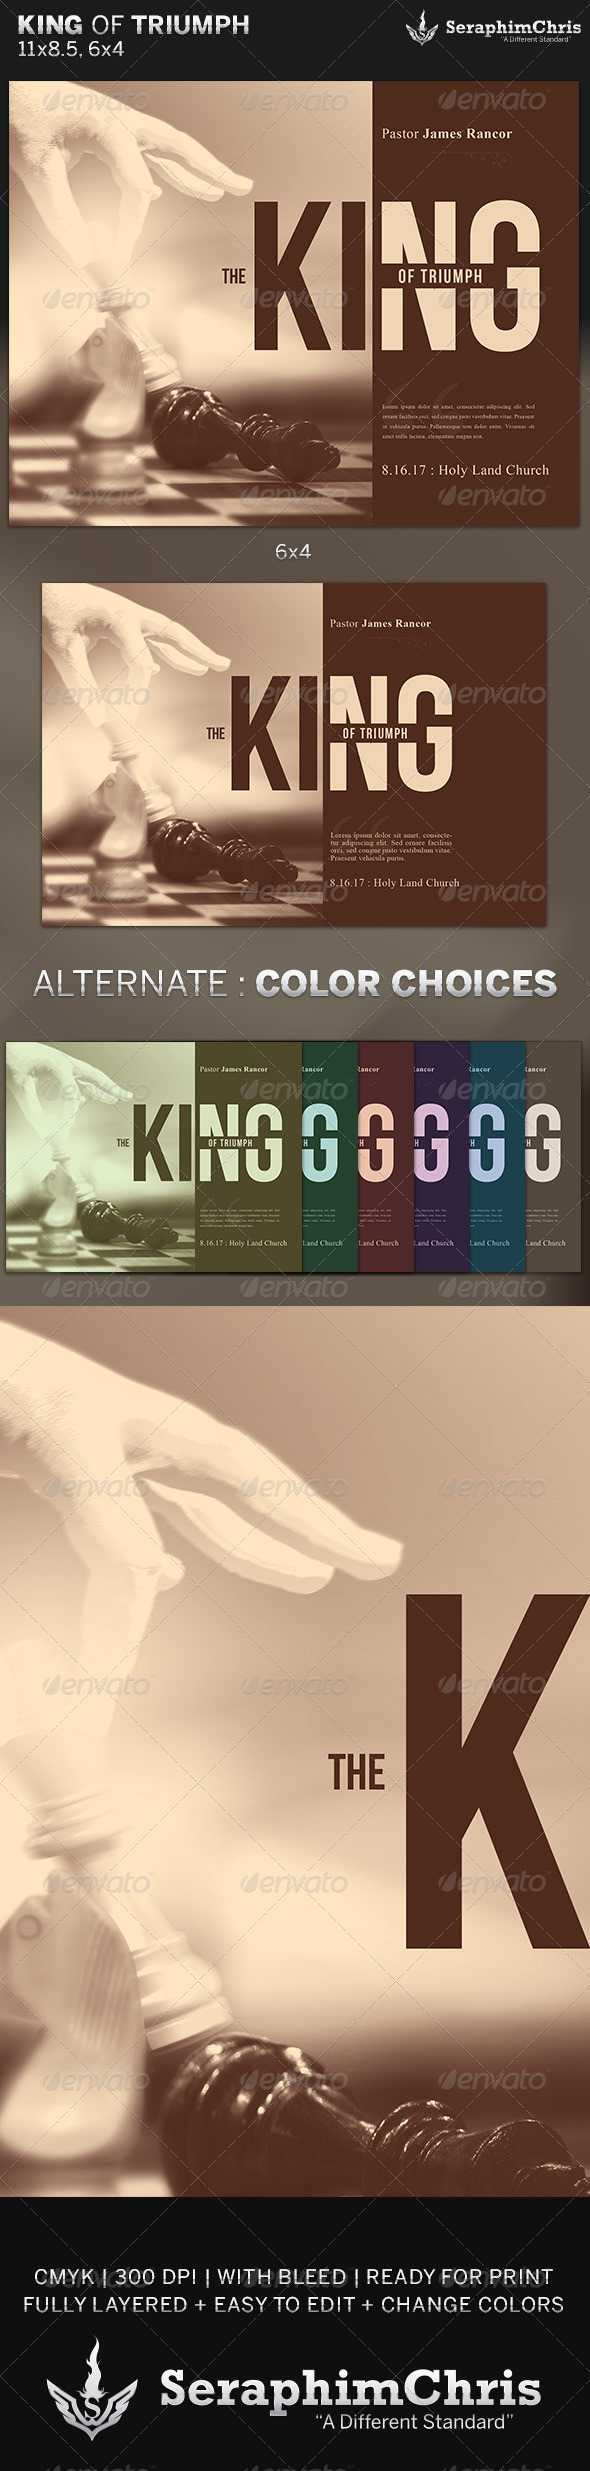 King of Triumph: Church Flyer Template - Church Flyers